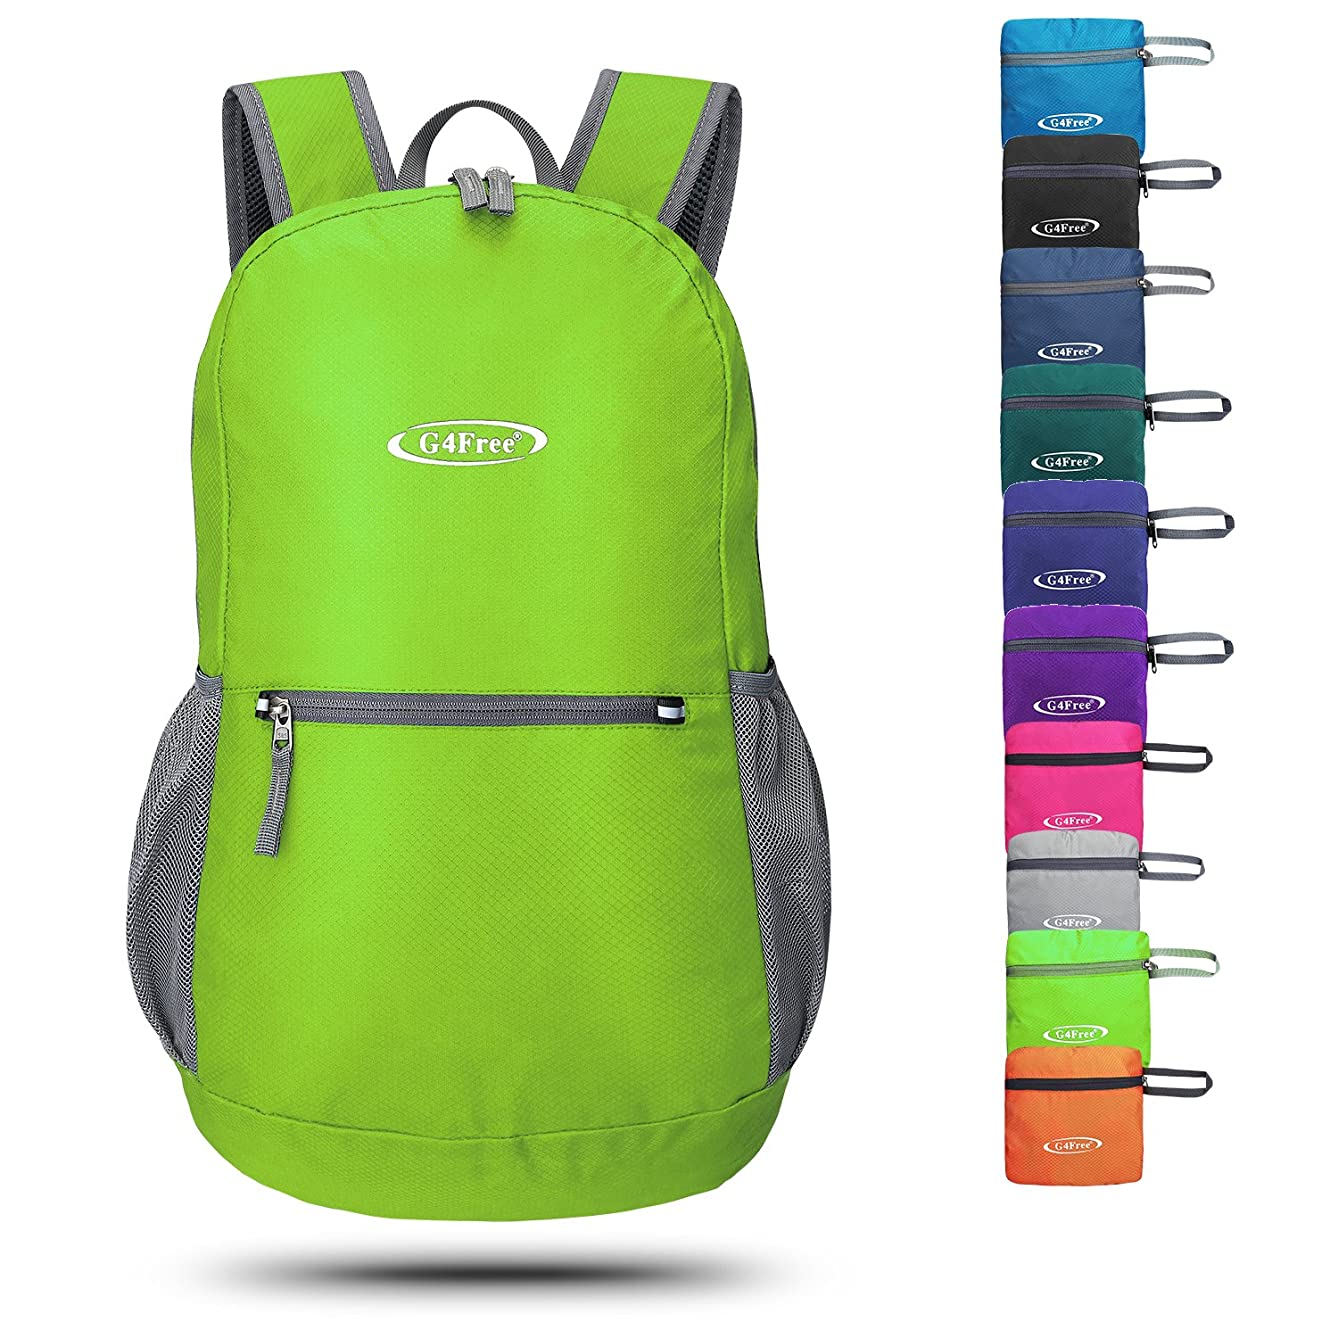 G4Free 20L Hiking Backpack Packable Lightweight Small Bag Water Resistant Foldable Compact Camping Daypack for Men Women